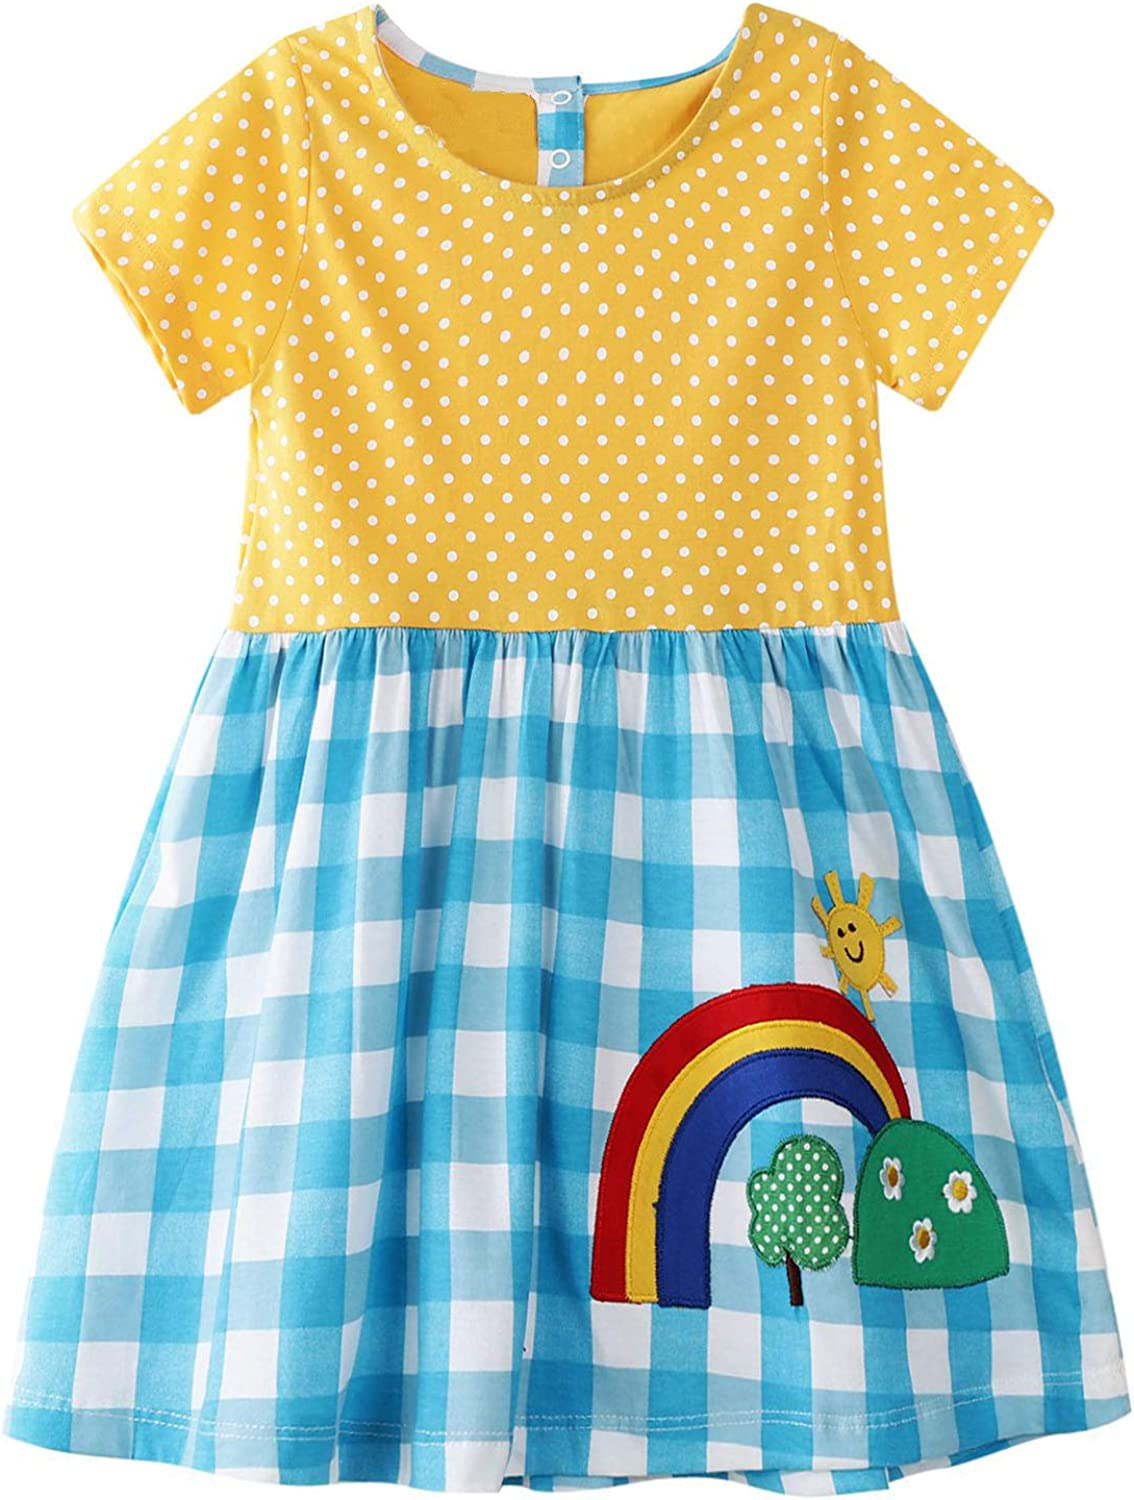 Updated 2021 – Top 10 Toddler Dress Apple